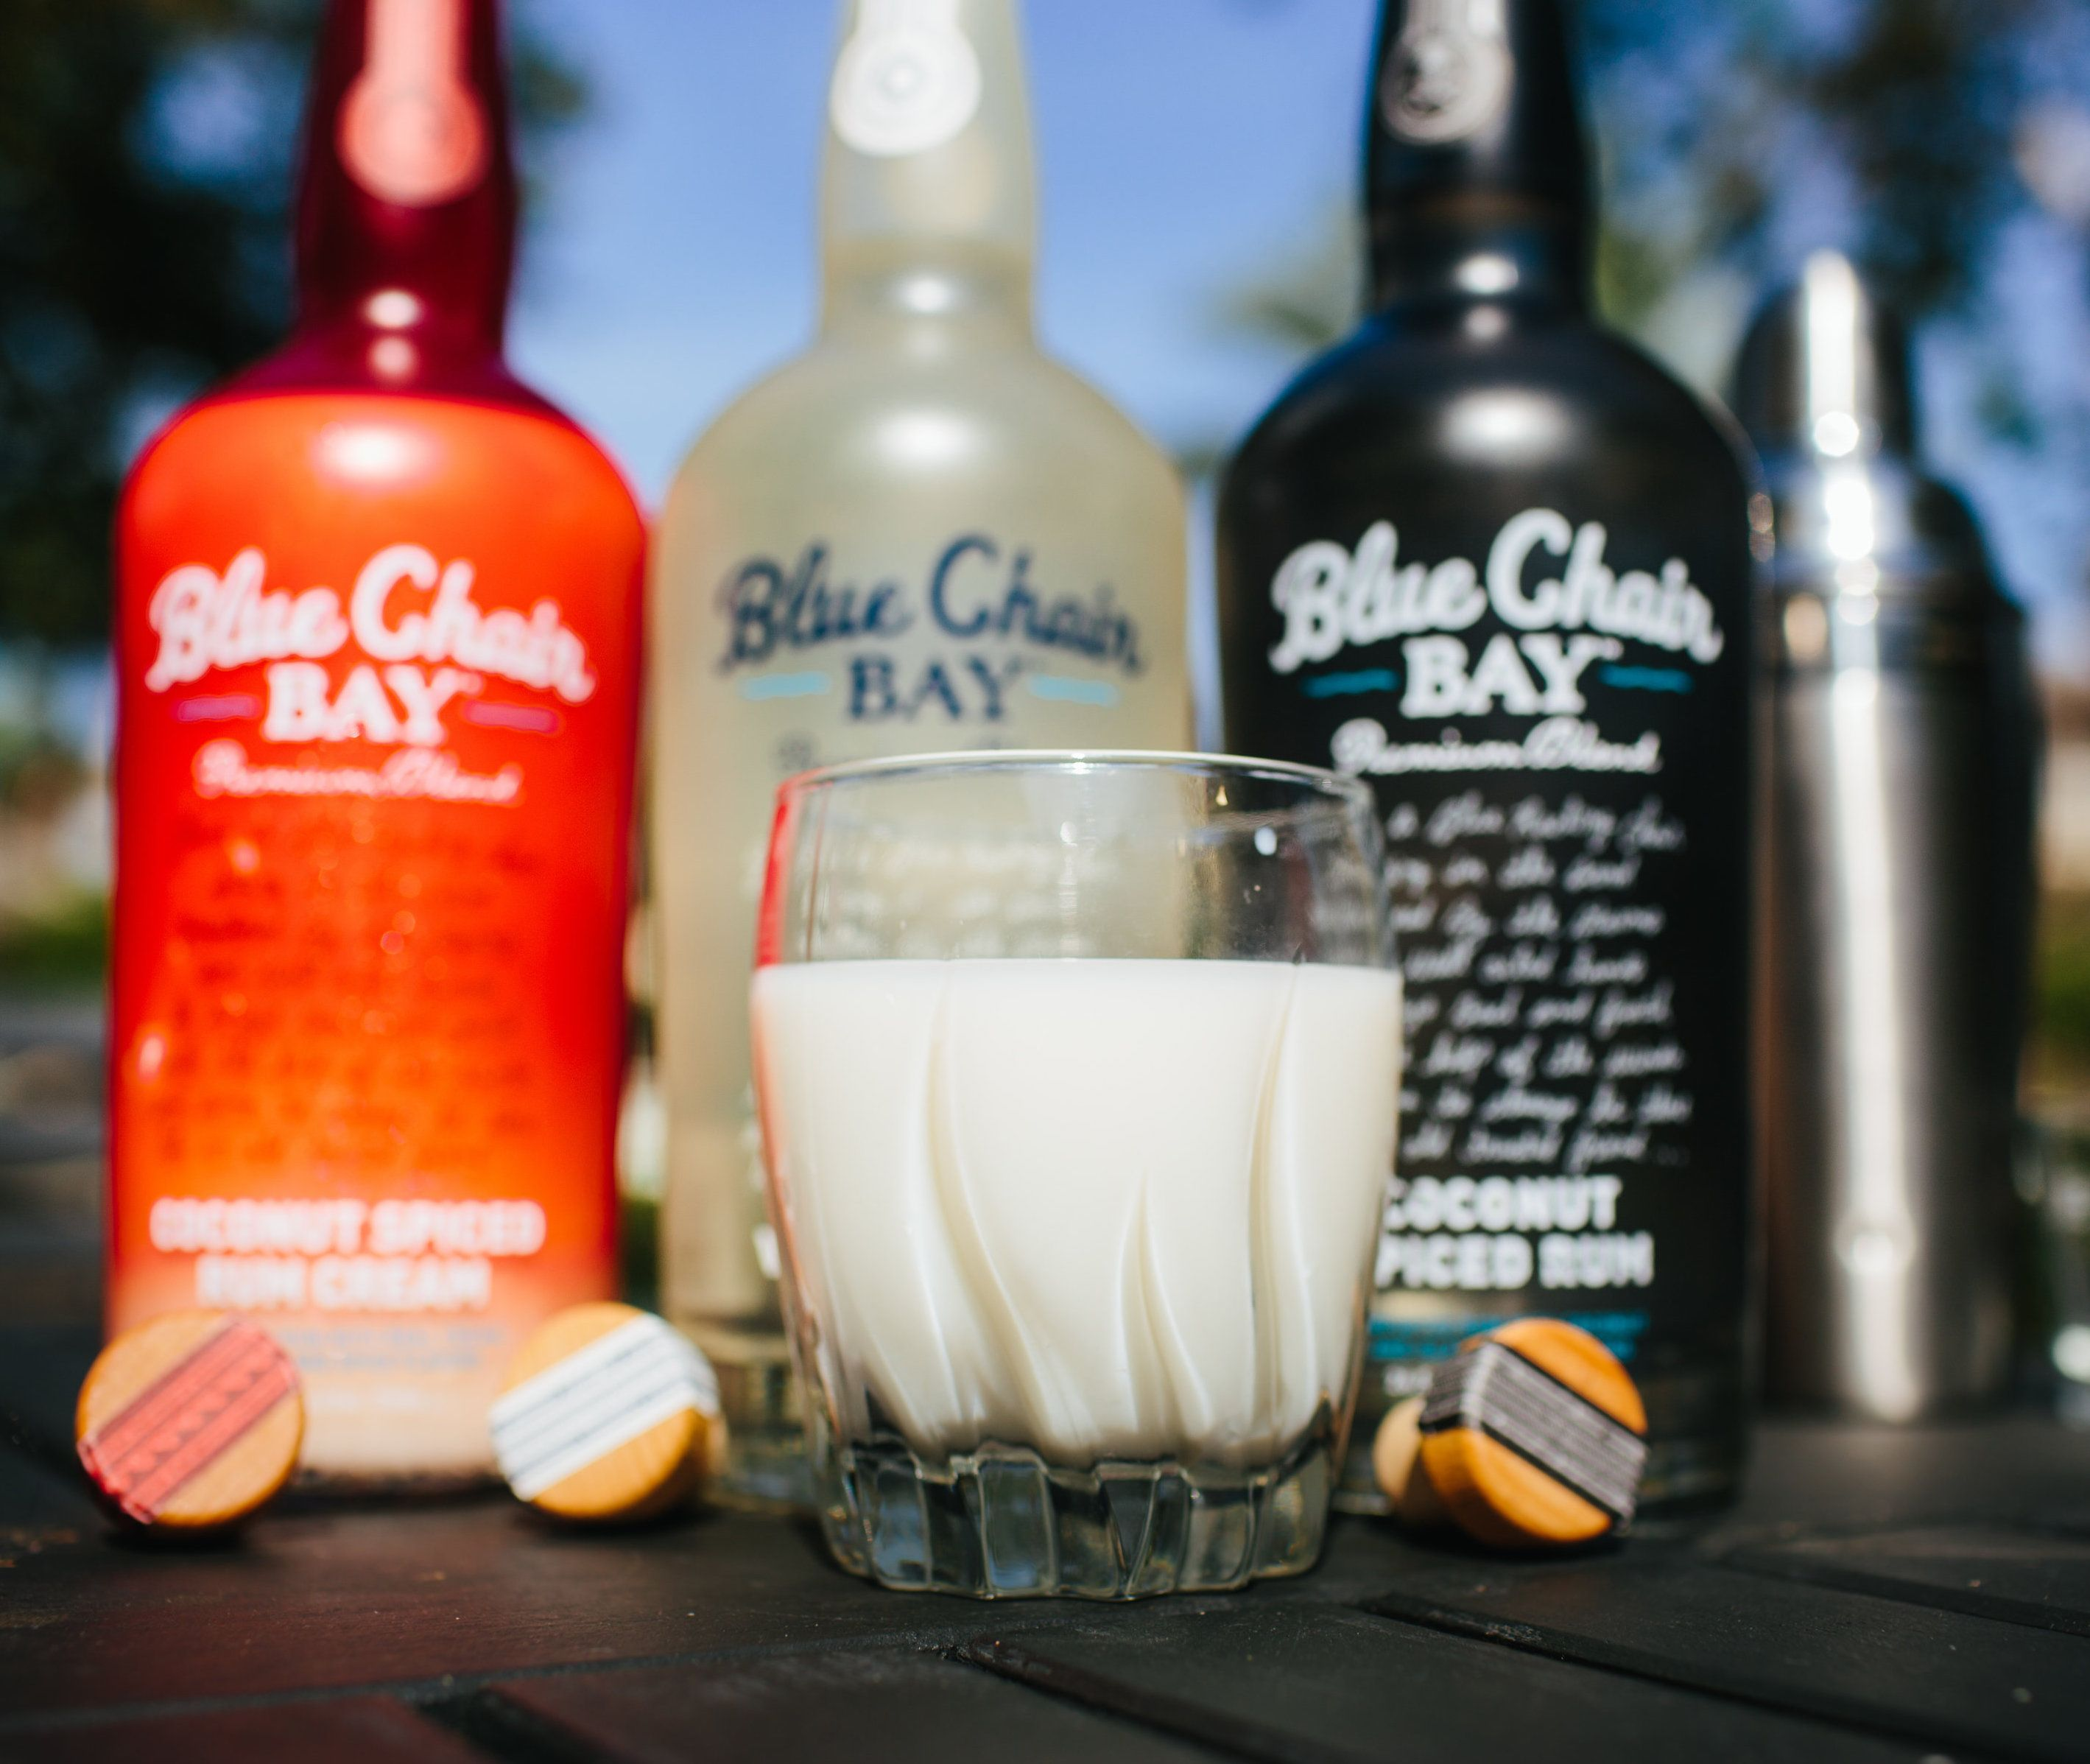 CHRISTMAS IN JULY COCKTAIL 2 oz Blue Chair Bay Coconut Spiced